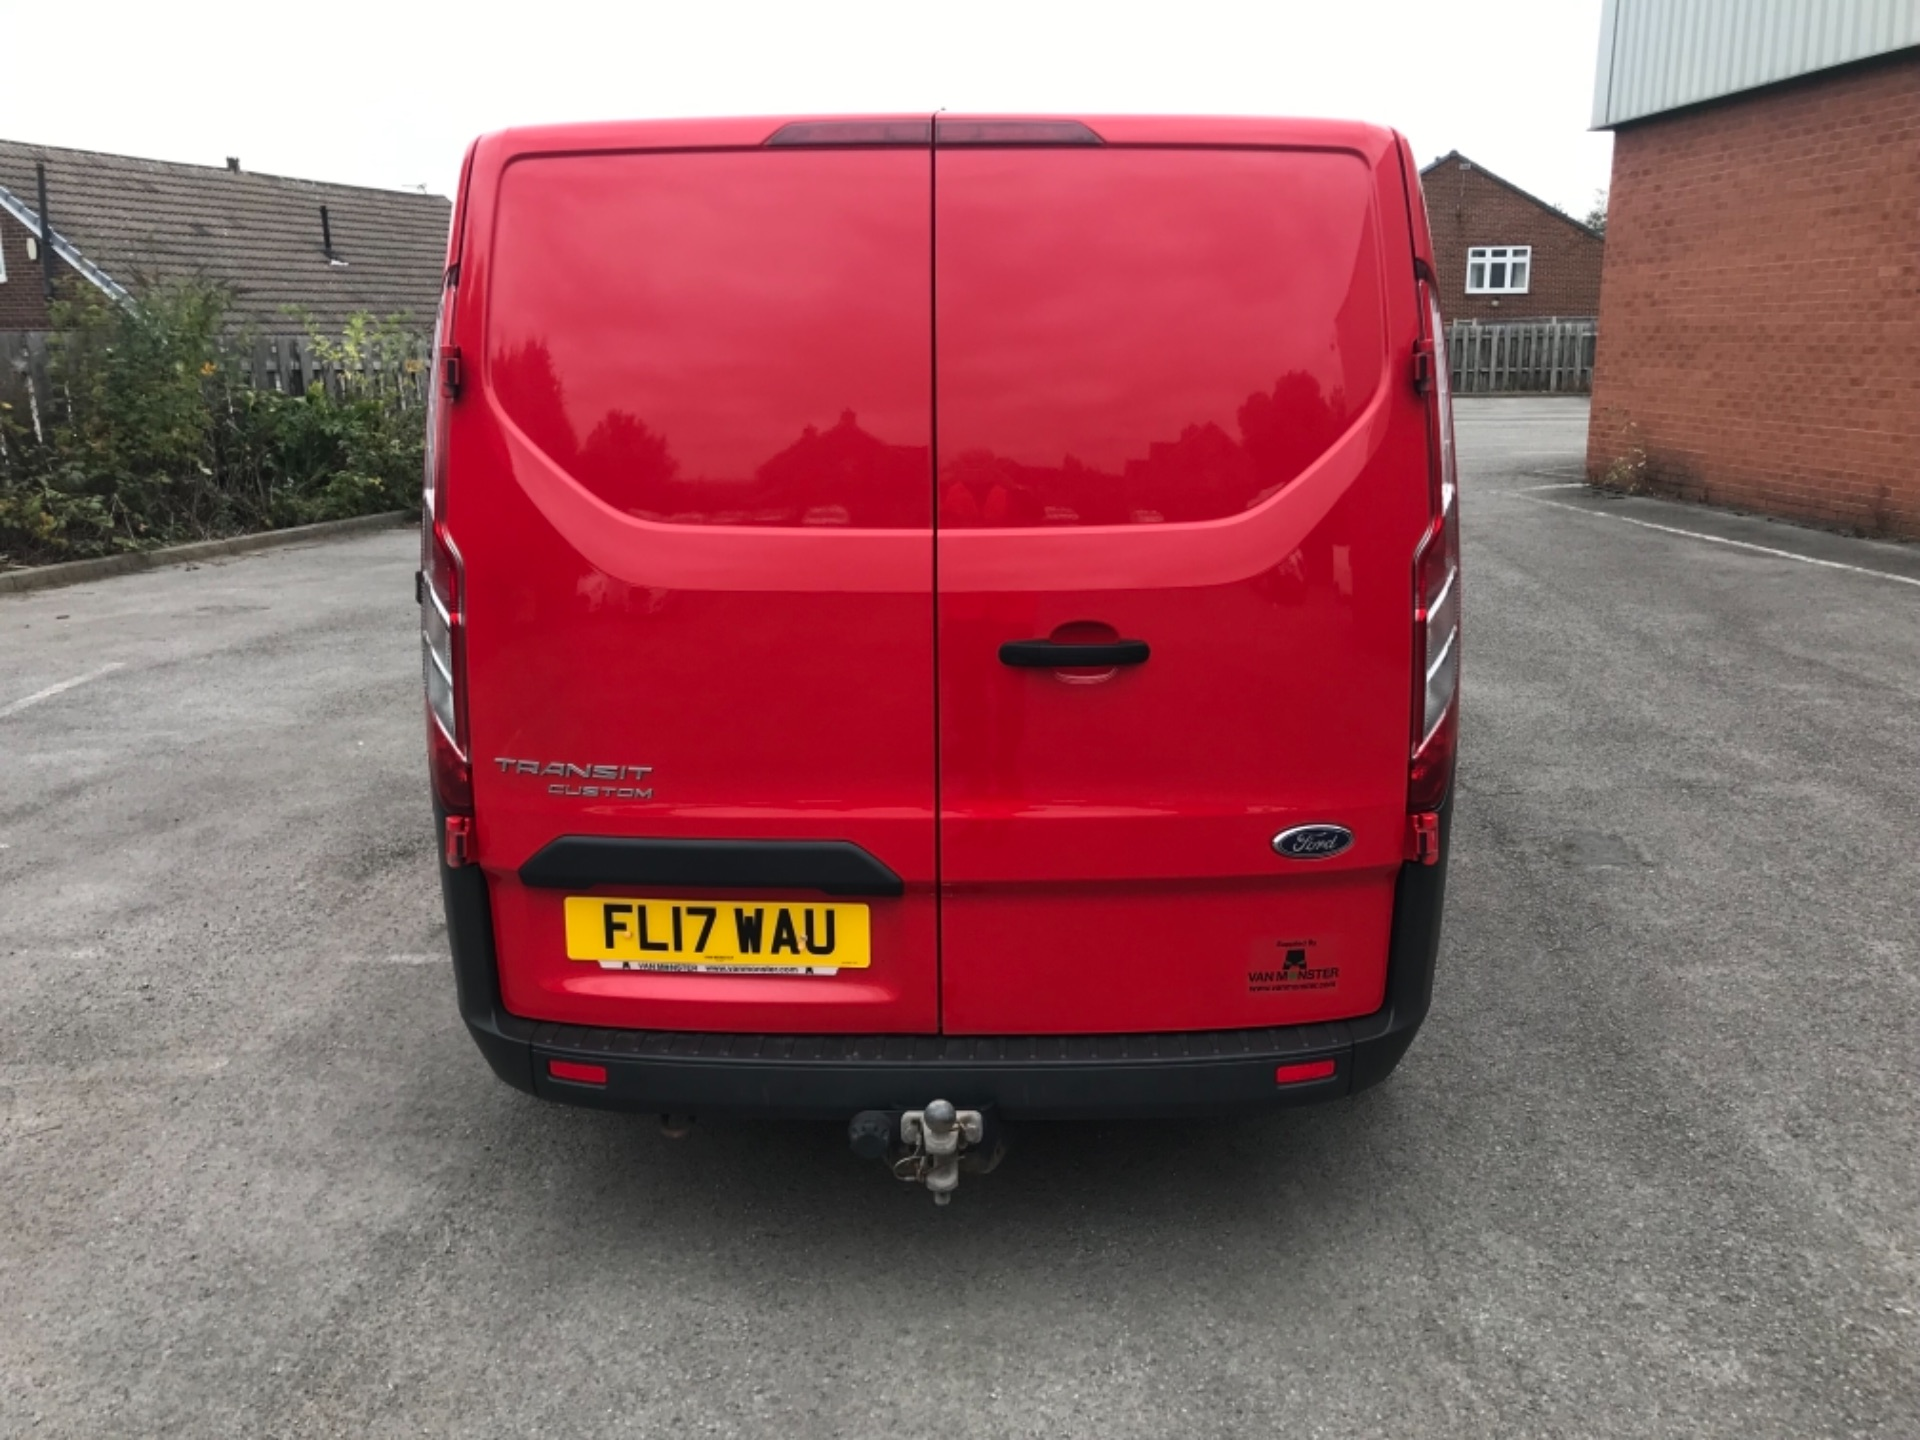 2017 Ford Transit Custom 2.0 Tdci 105Ps Low Roof Van EURO 6 (FL17WAU) Image 6